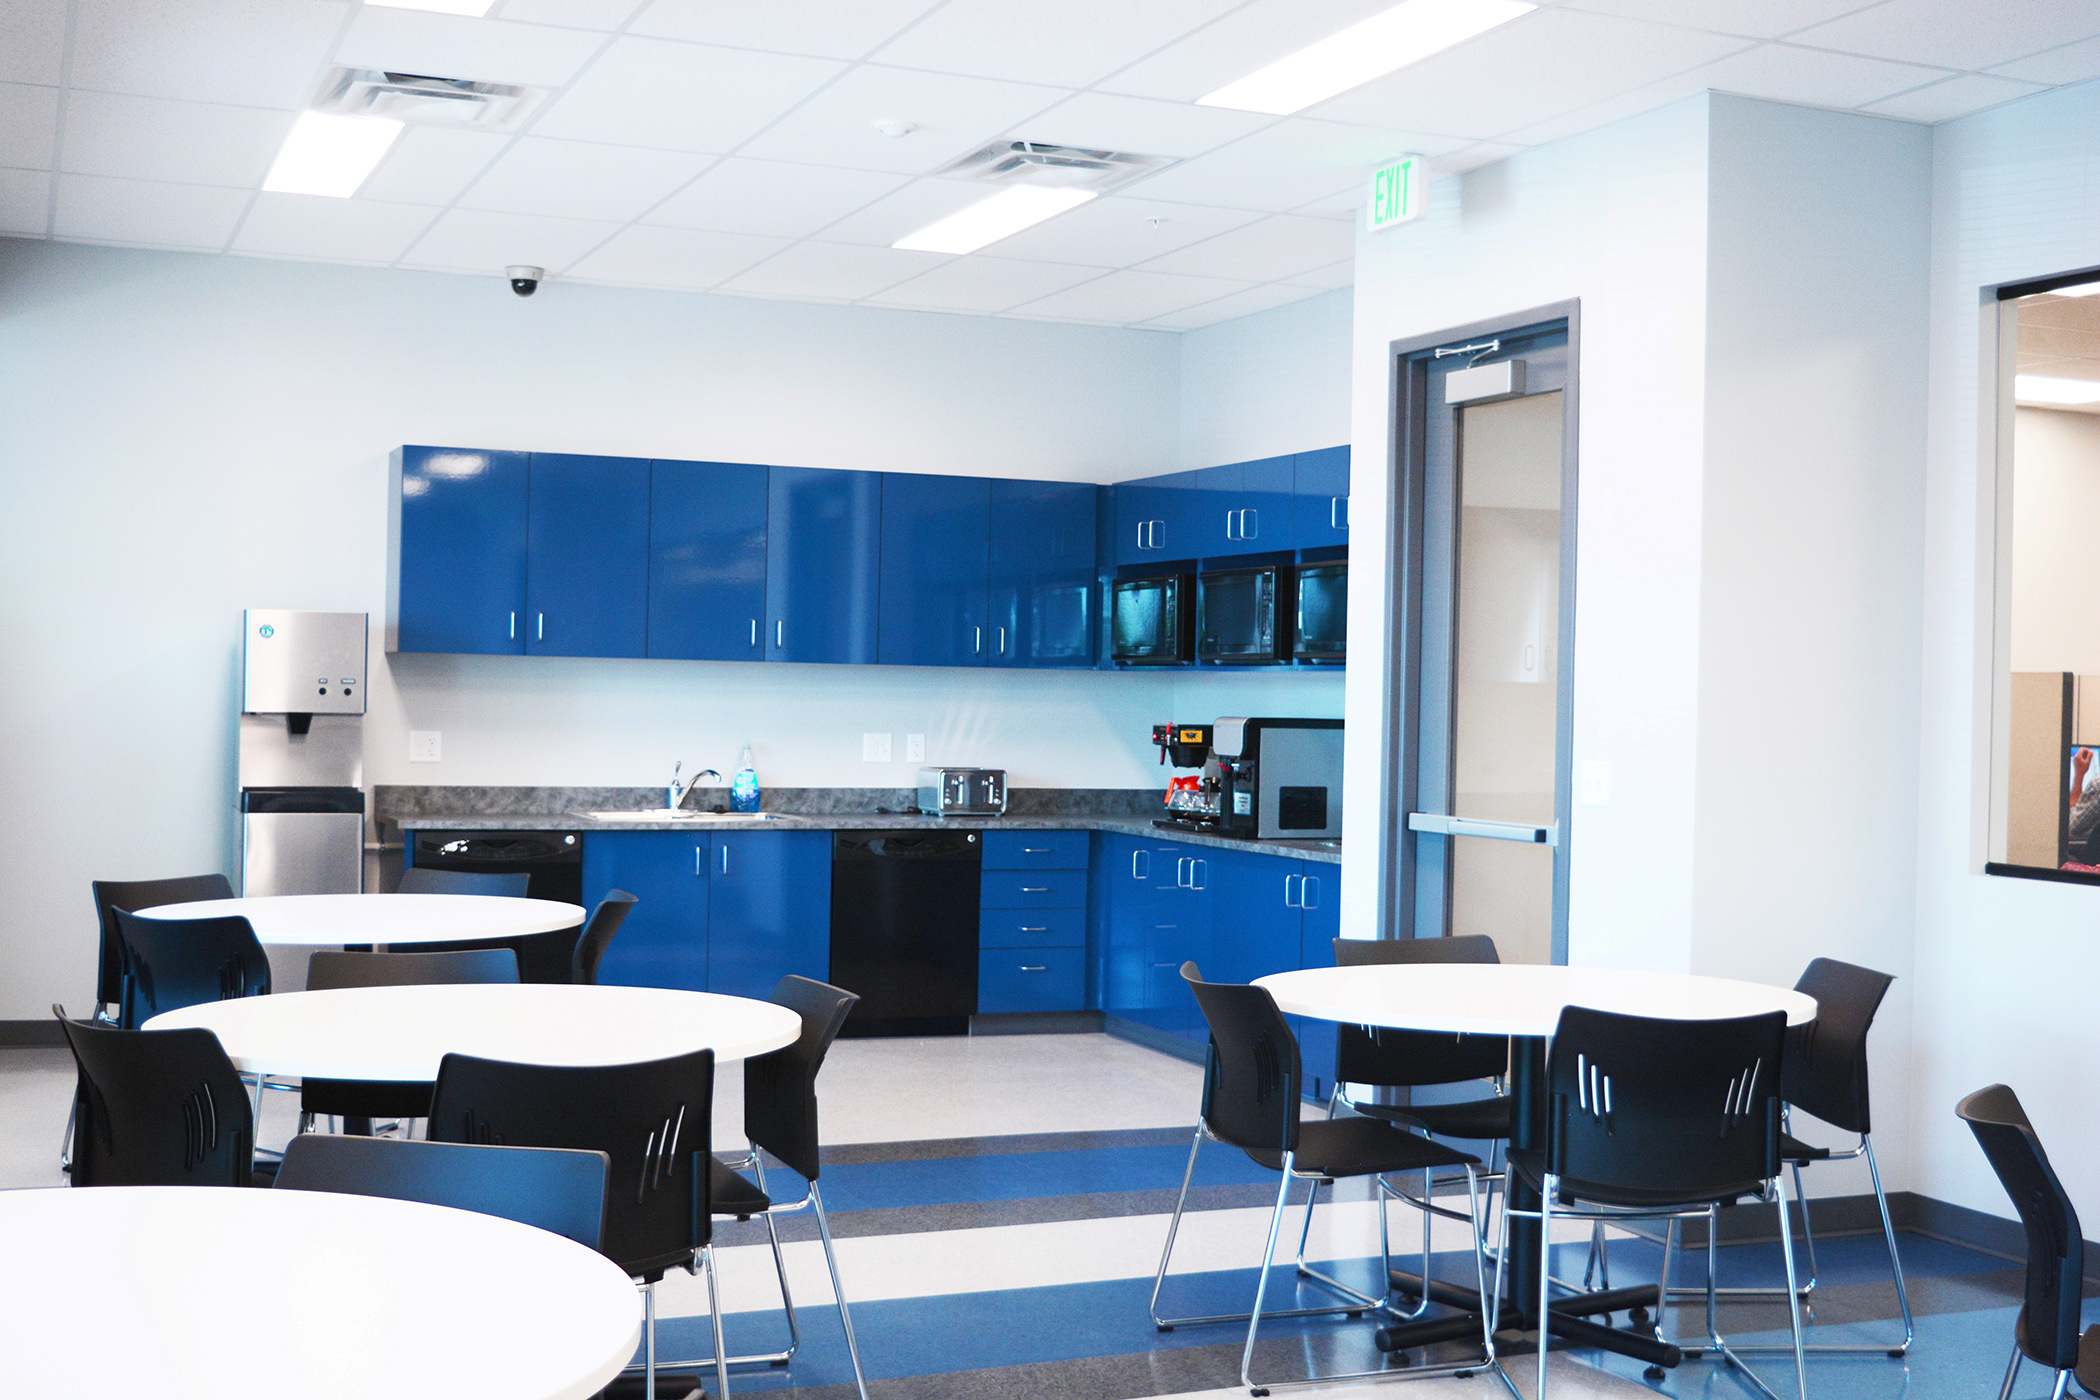 We used high chroma Formica gloss laminate on the millwork in the breakroom, copy area and executive coffee bar.Vertical and horizontal surfaces mimic the VCT patterned flooring, which features 5 different colors in blue and grey tones.